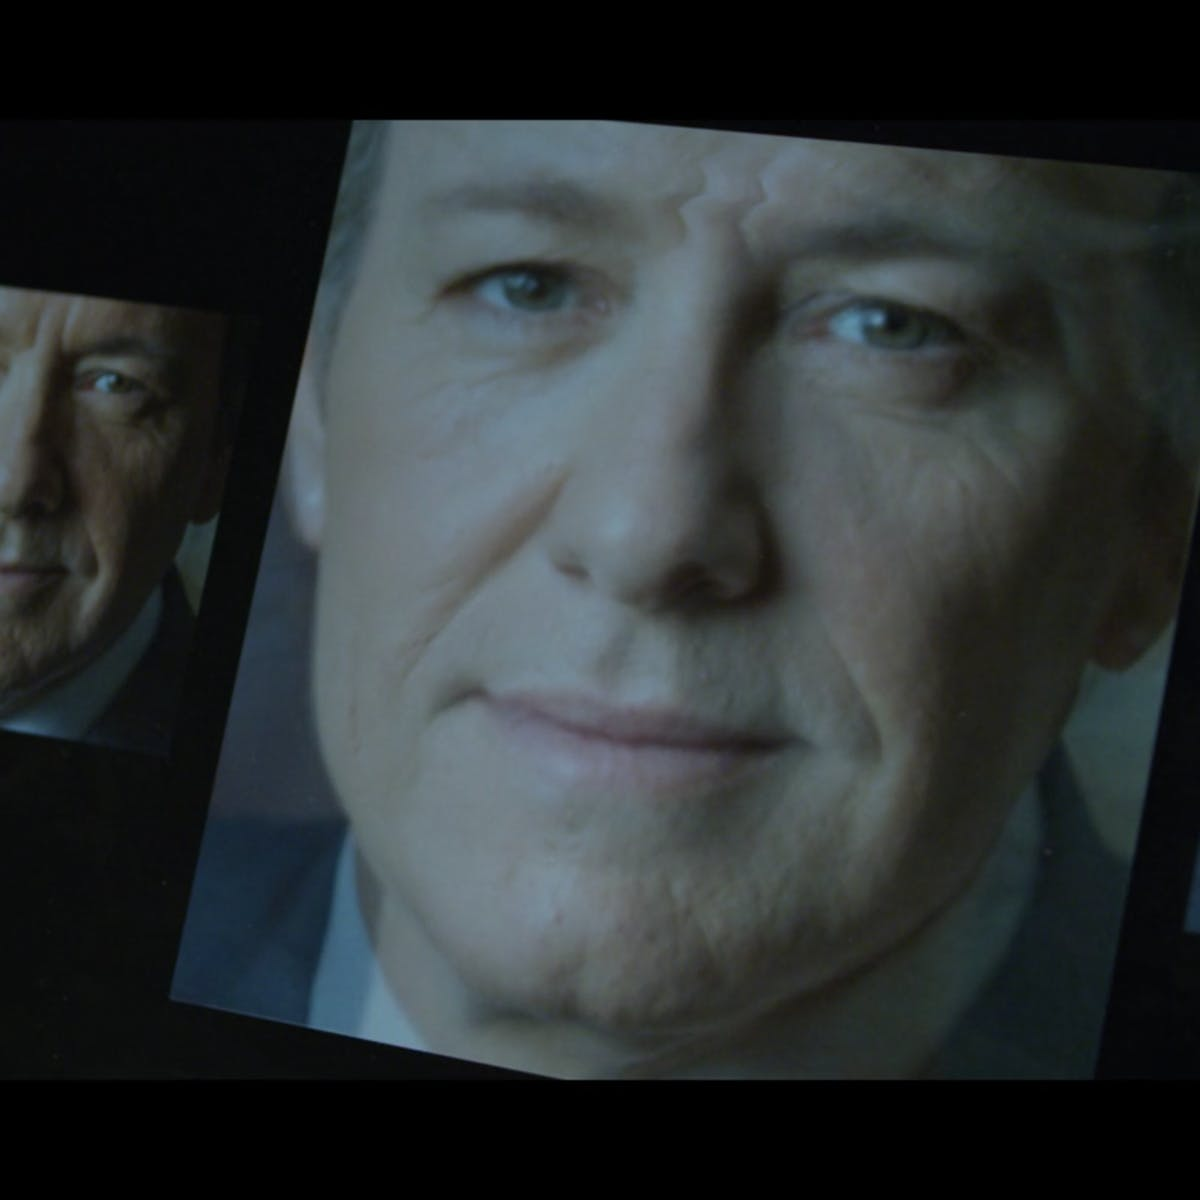 House of Cards' Face App Could Subliminally Influence Voters   Inverse